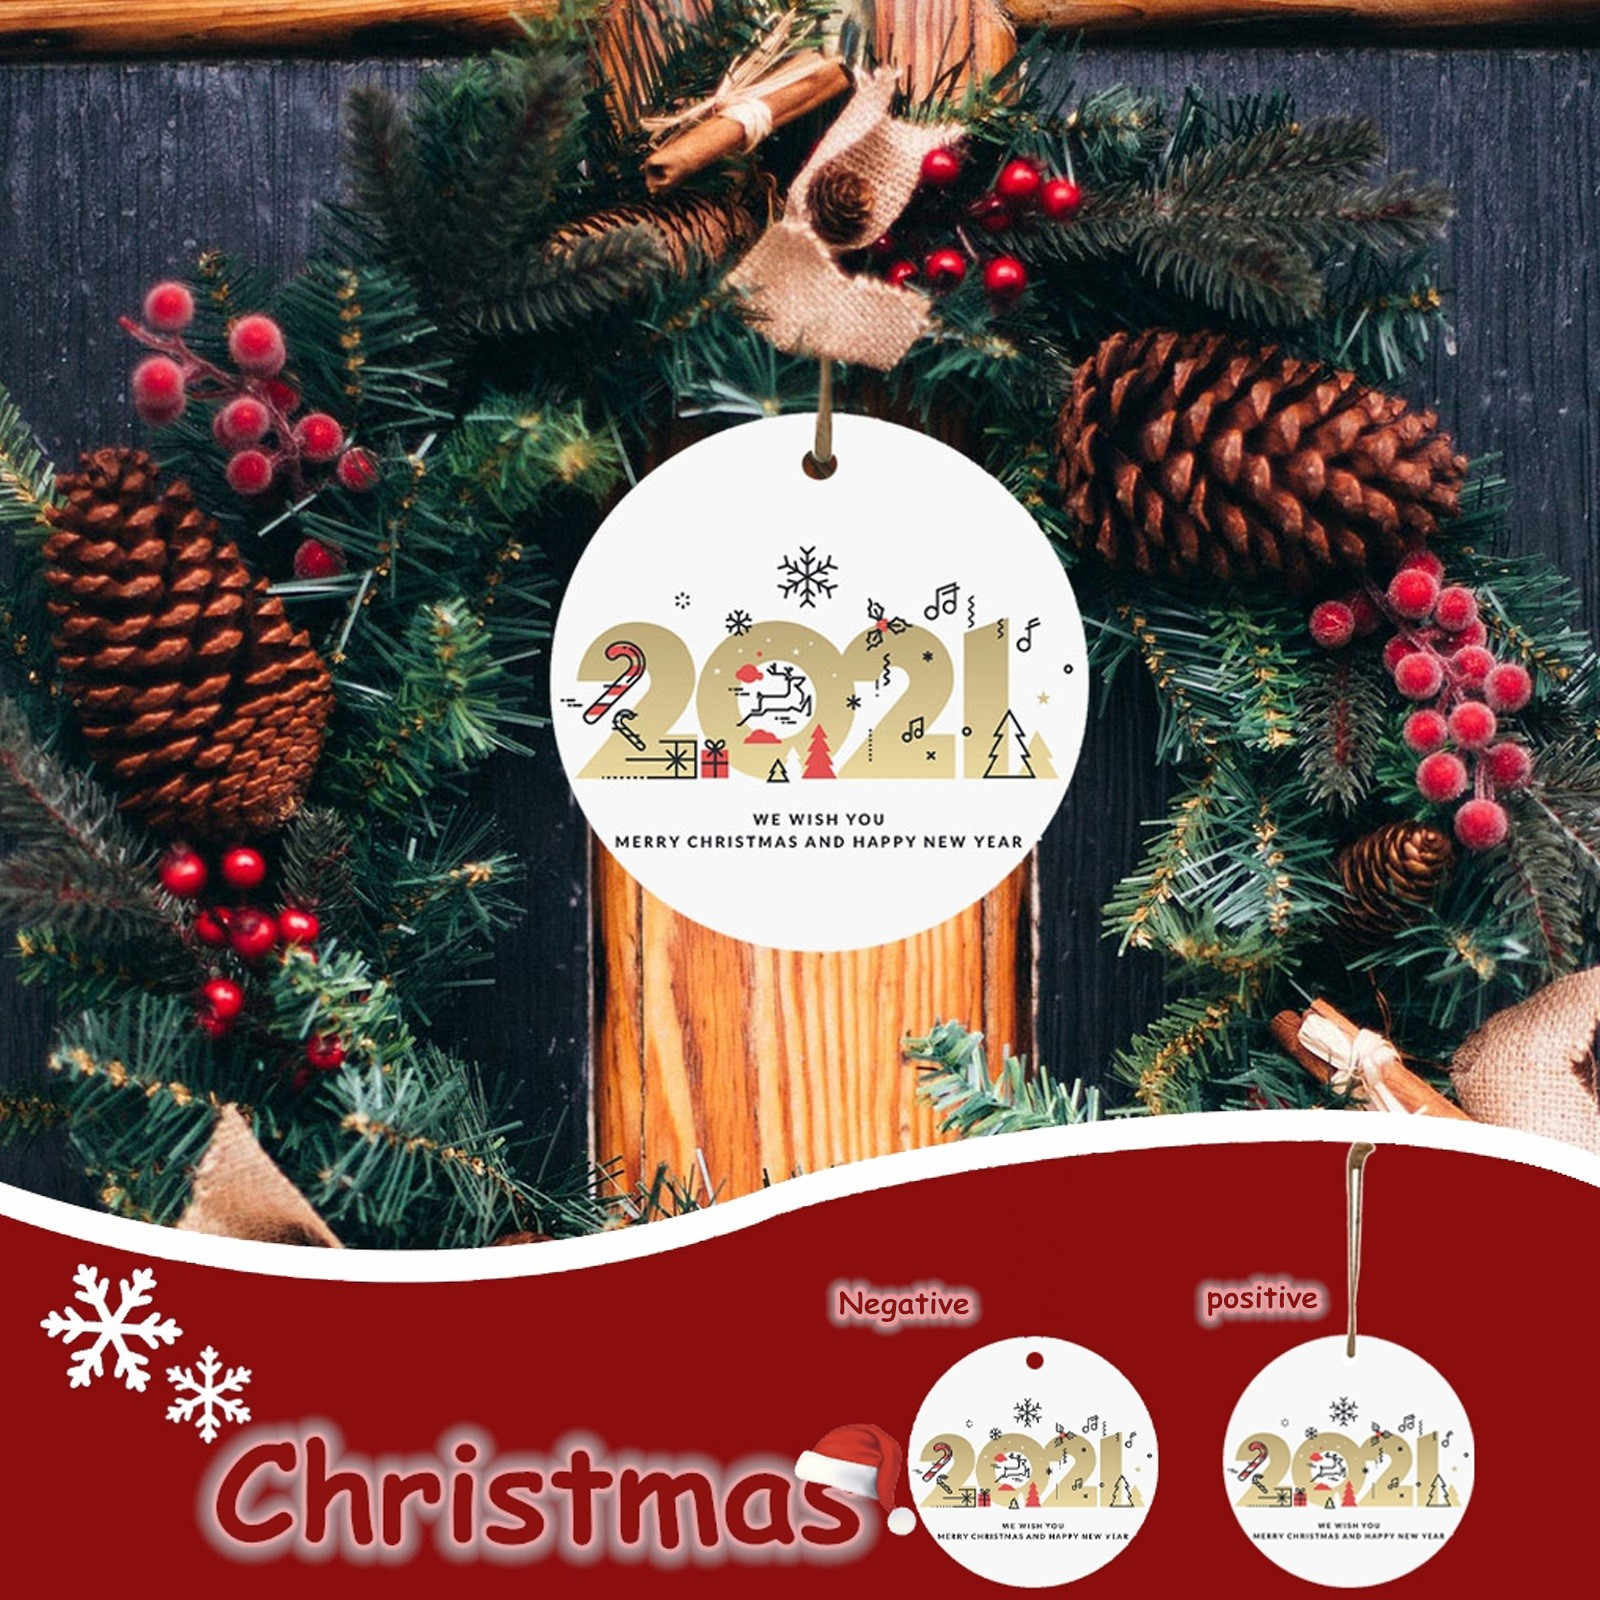 Special 2021 Holiday Christmas Ornaments 2021 Happy New Year Christmas Decorations Fashion Unique Shopping Mall Decorations Special Christmas Tree Pendant Pendant Drop Ornaments Aliexpress